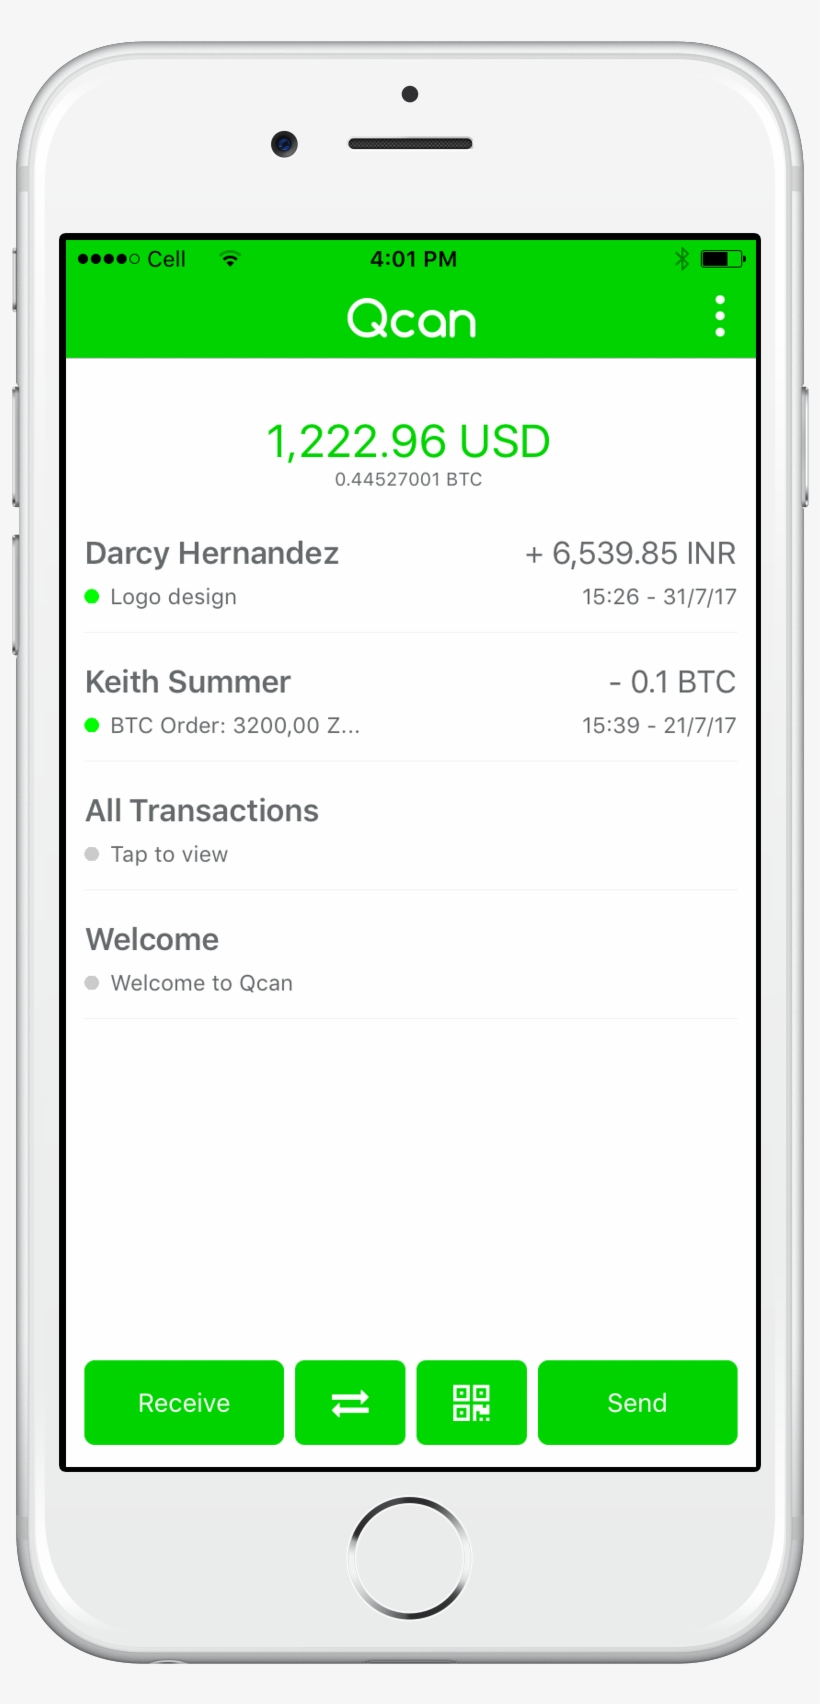 Bitcoin Mobile Wallet - Round Up For Charity App, transparent png #8088426